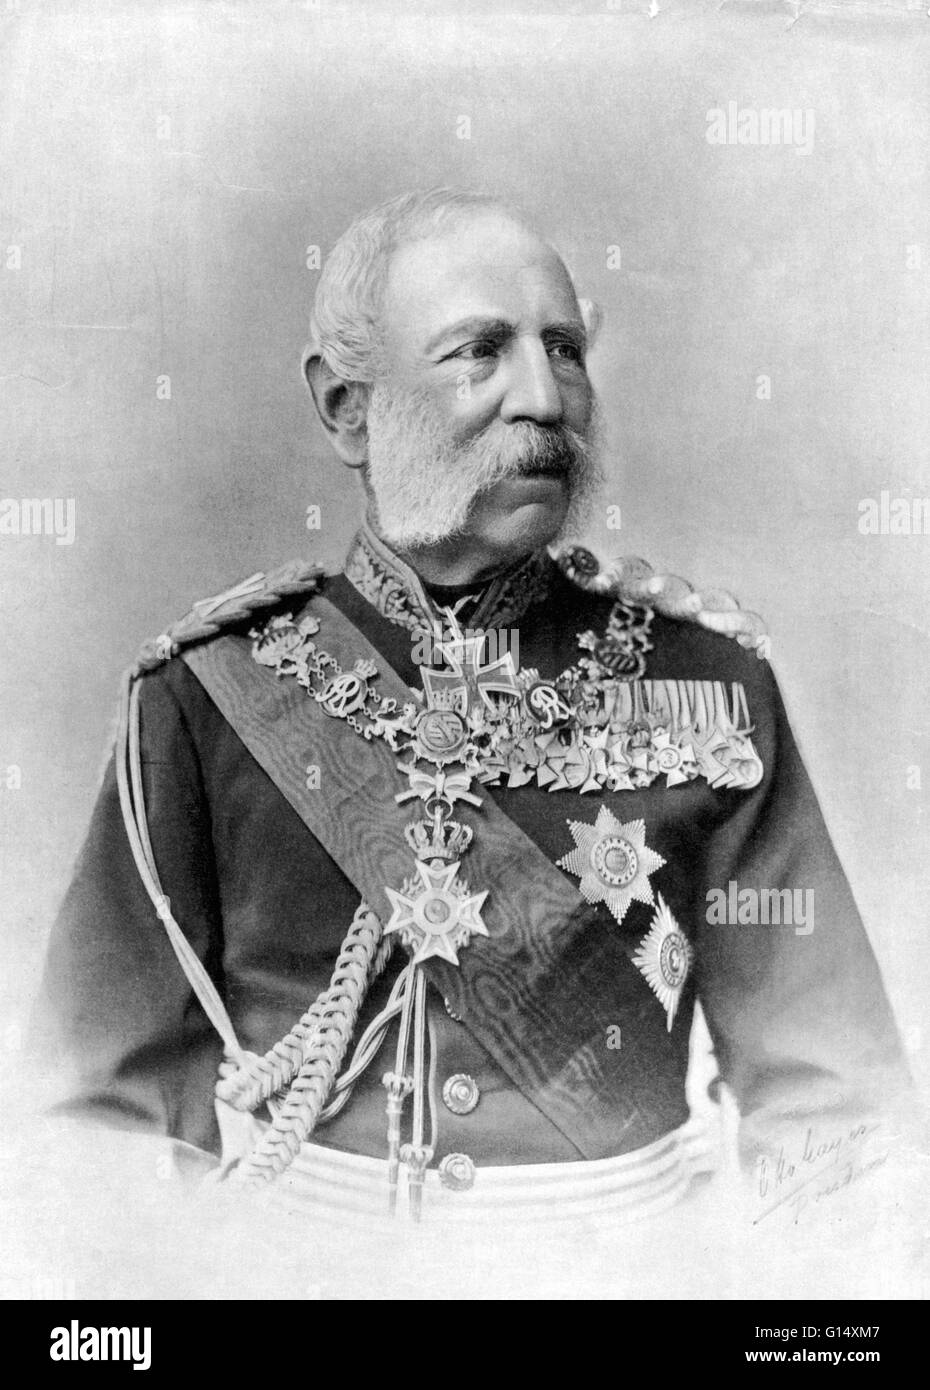 William I, German Emperor, King of Prussia and first German Emperor, 1797-1888. - Stock Image